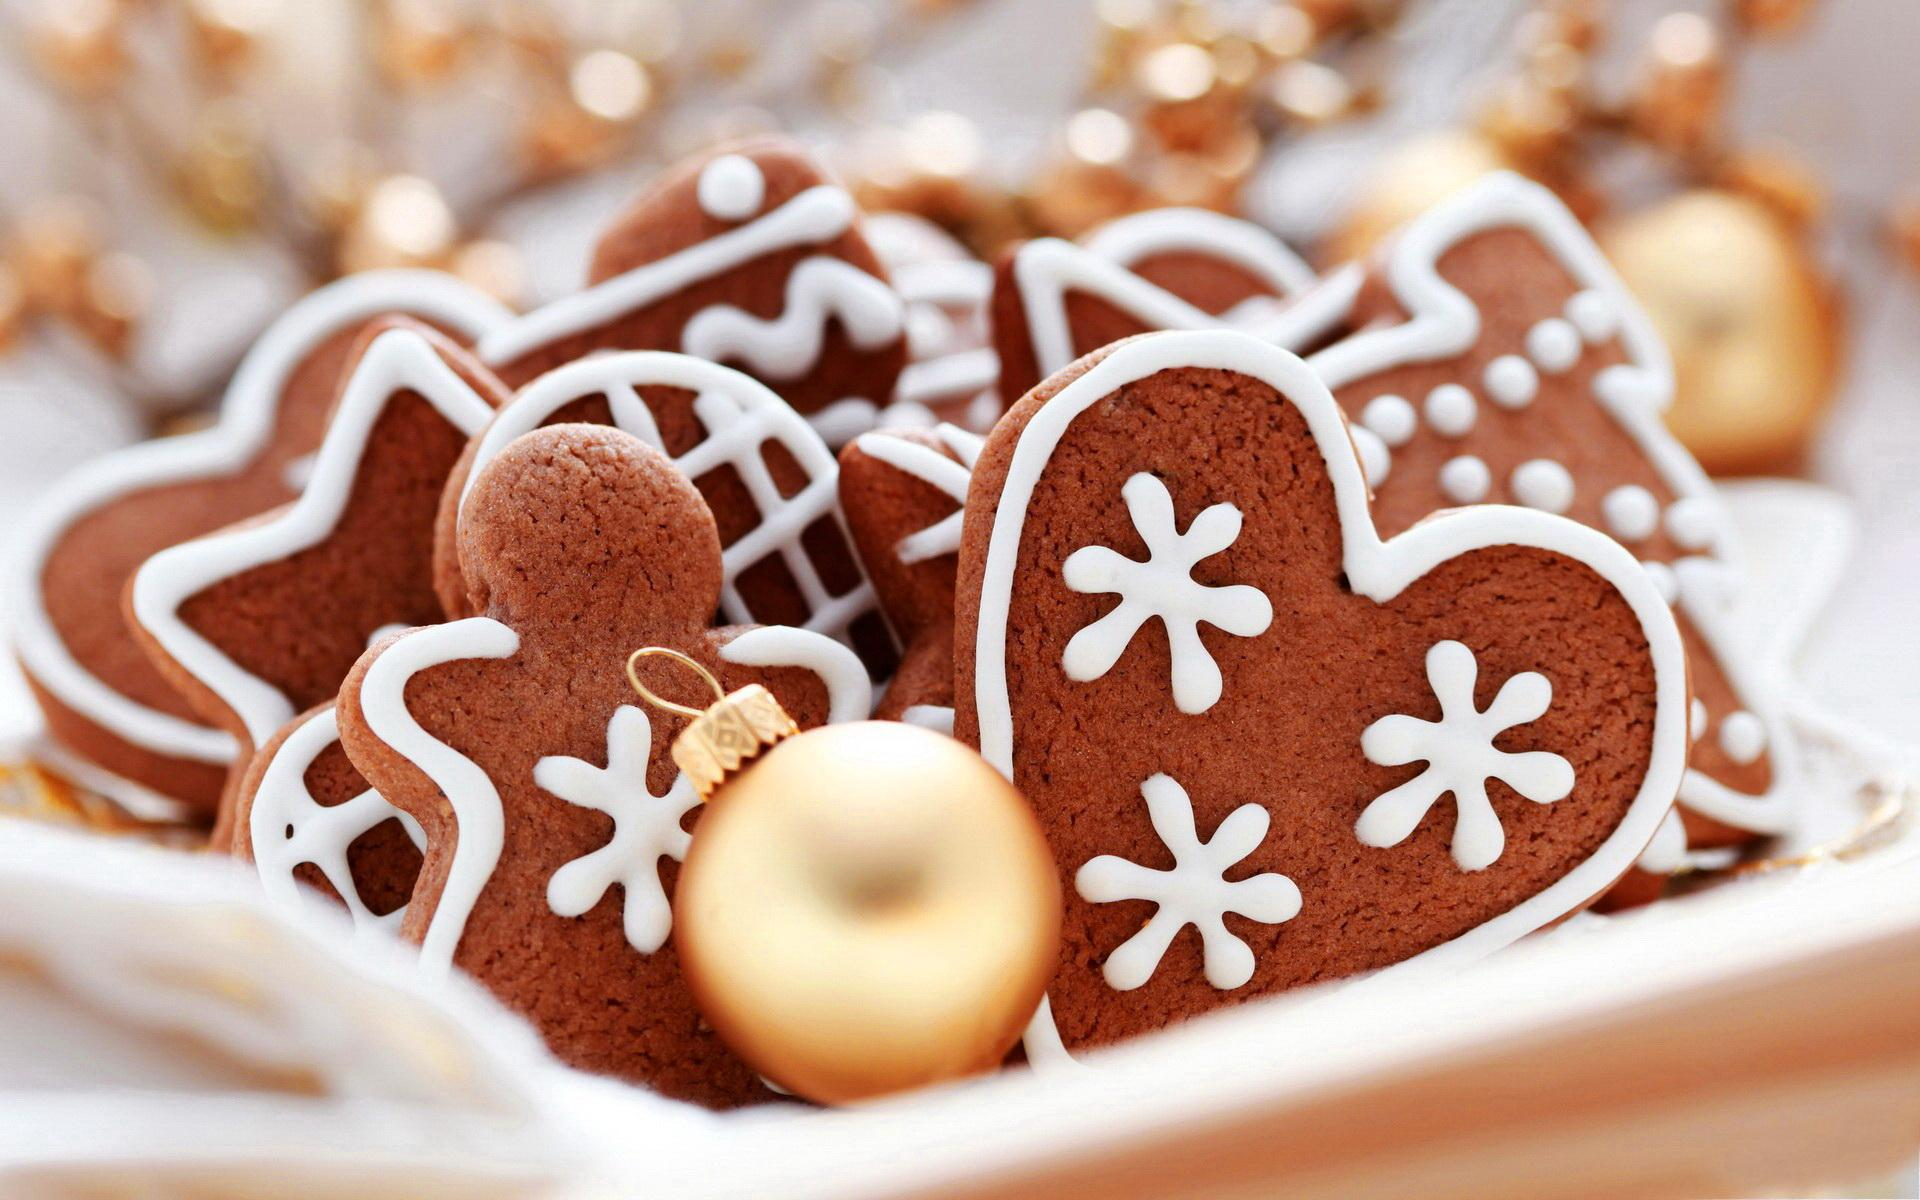 Lovely Christmas Cookies Wallpaper